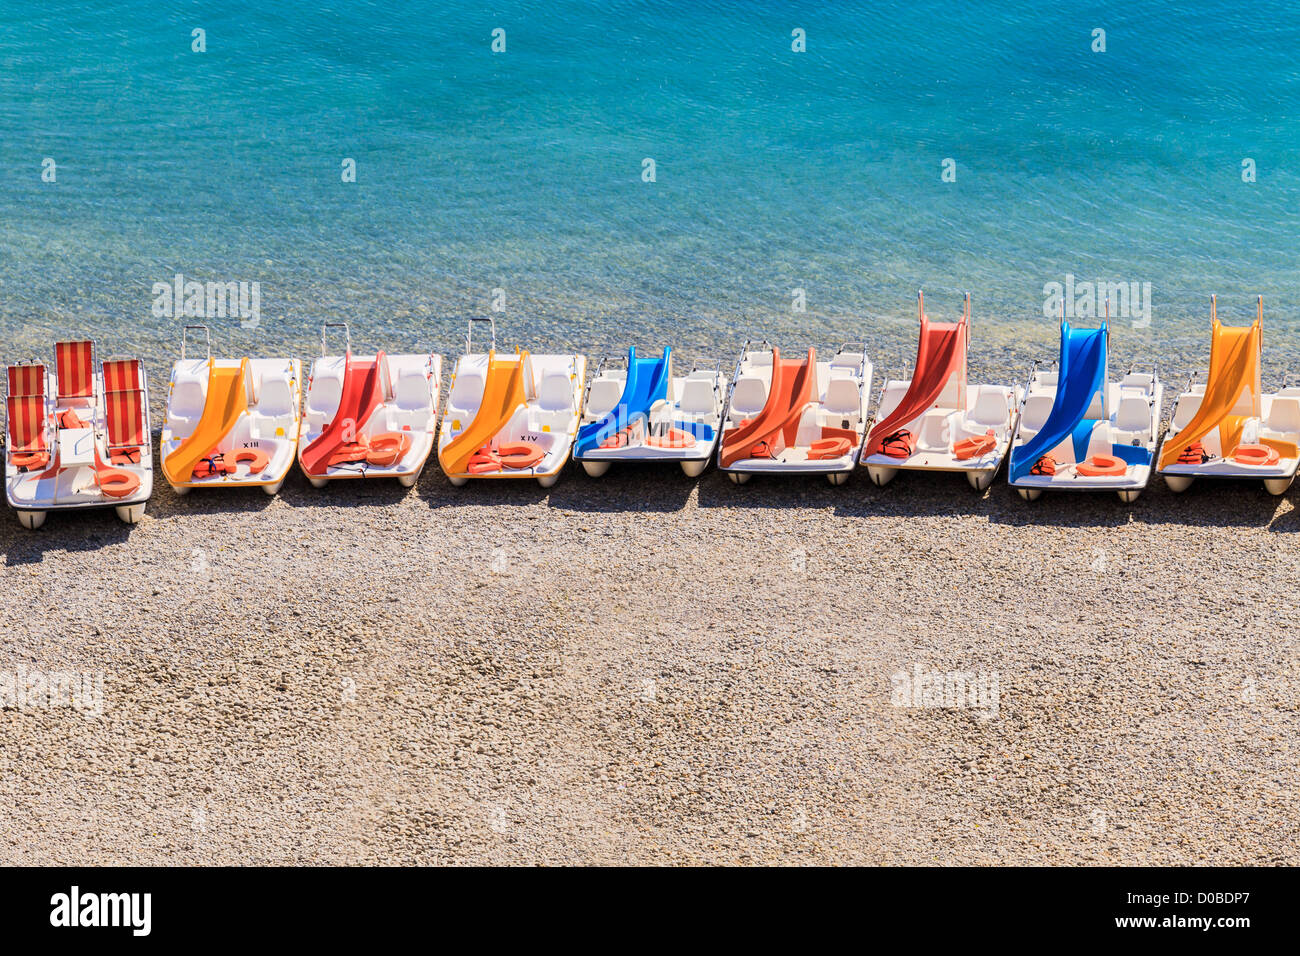 Colorful pedal boats on a stony beach - Stock Image